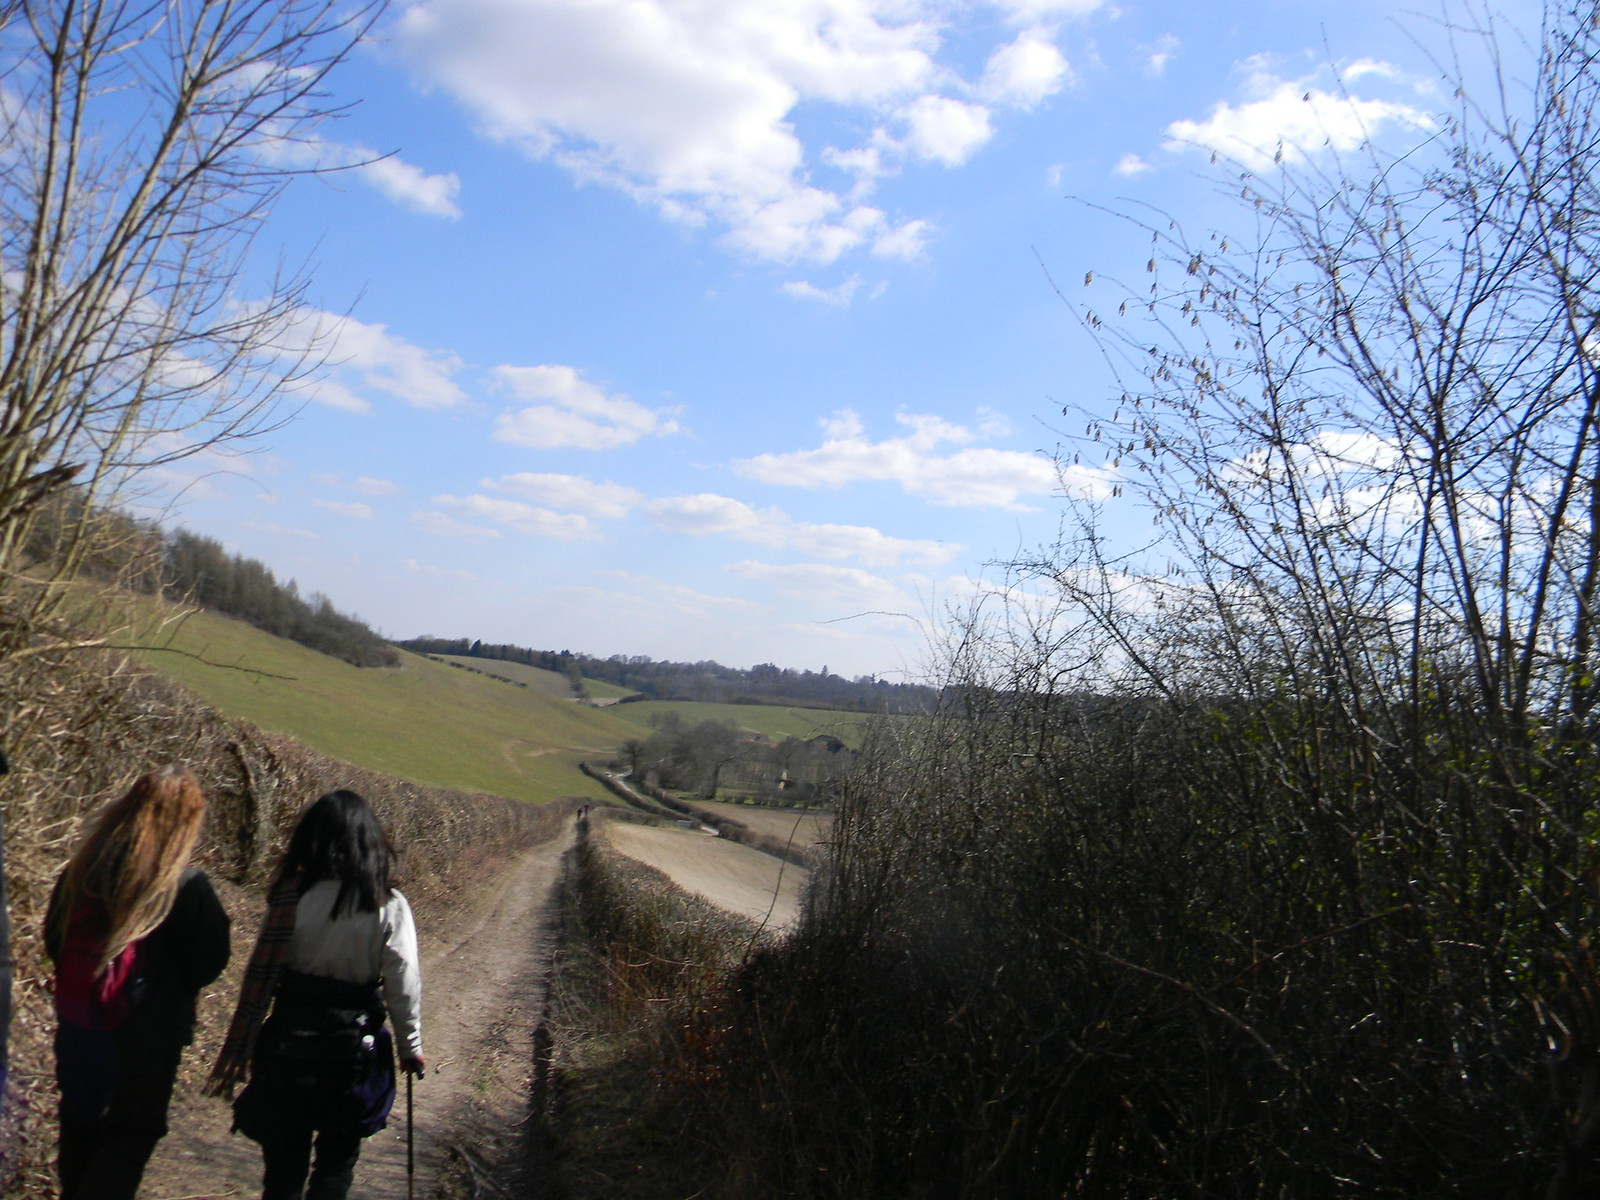 Down to St James' Henley via Stonor (Stonor Shortcut)